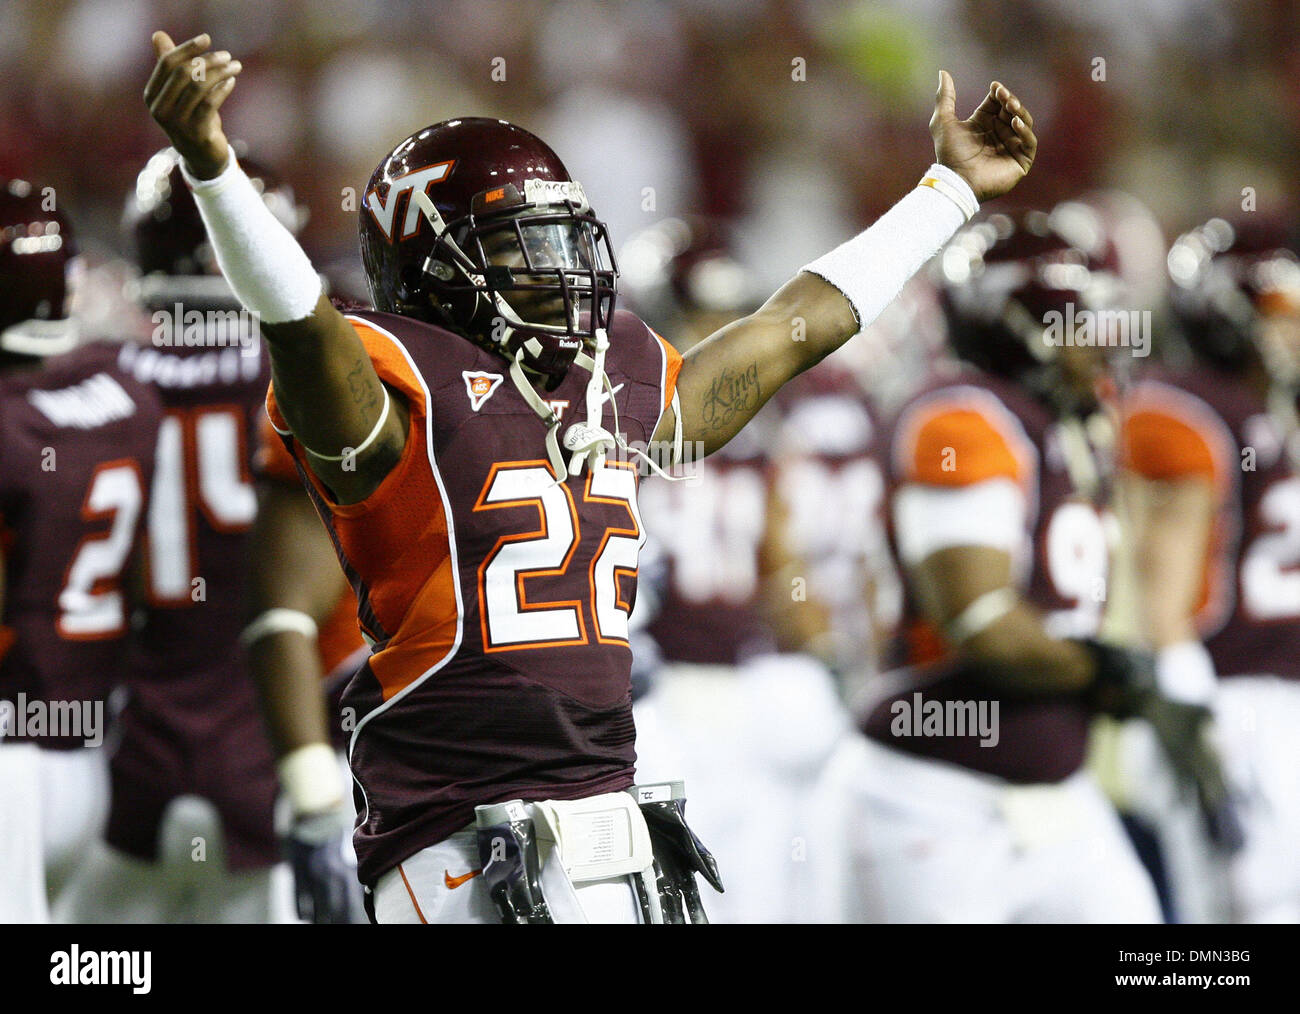 Sep 05, 2009 - Atlanta, Georgia, USA - NCAA Football - Virginia Tech's STEPHAN VIRGIL tries to pump up the crowd before Virginia Tech's game against the University of Alabama in the Georgia Dome (Credit Image: © Josh D. Weiss/ZUMA Press) - Stock Image